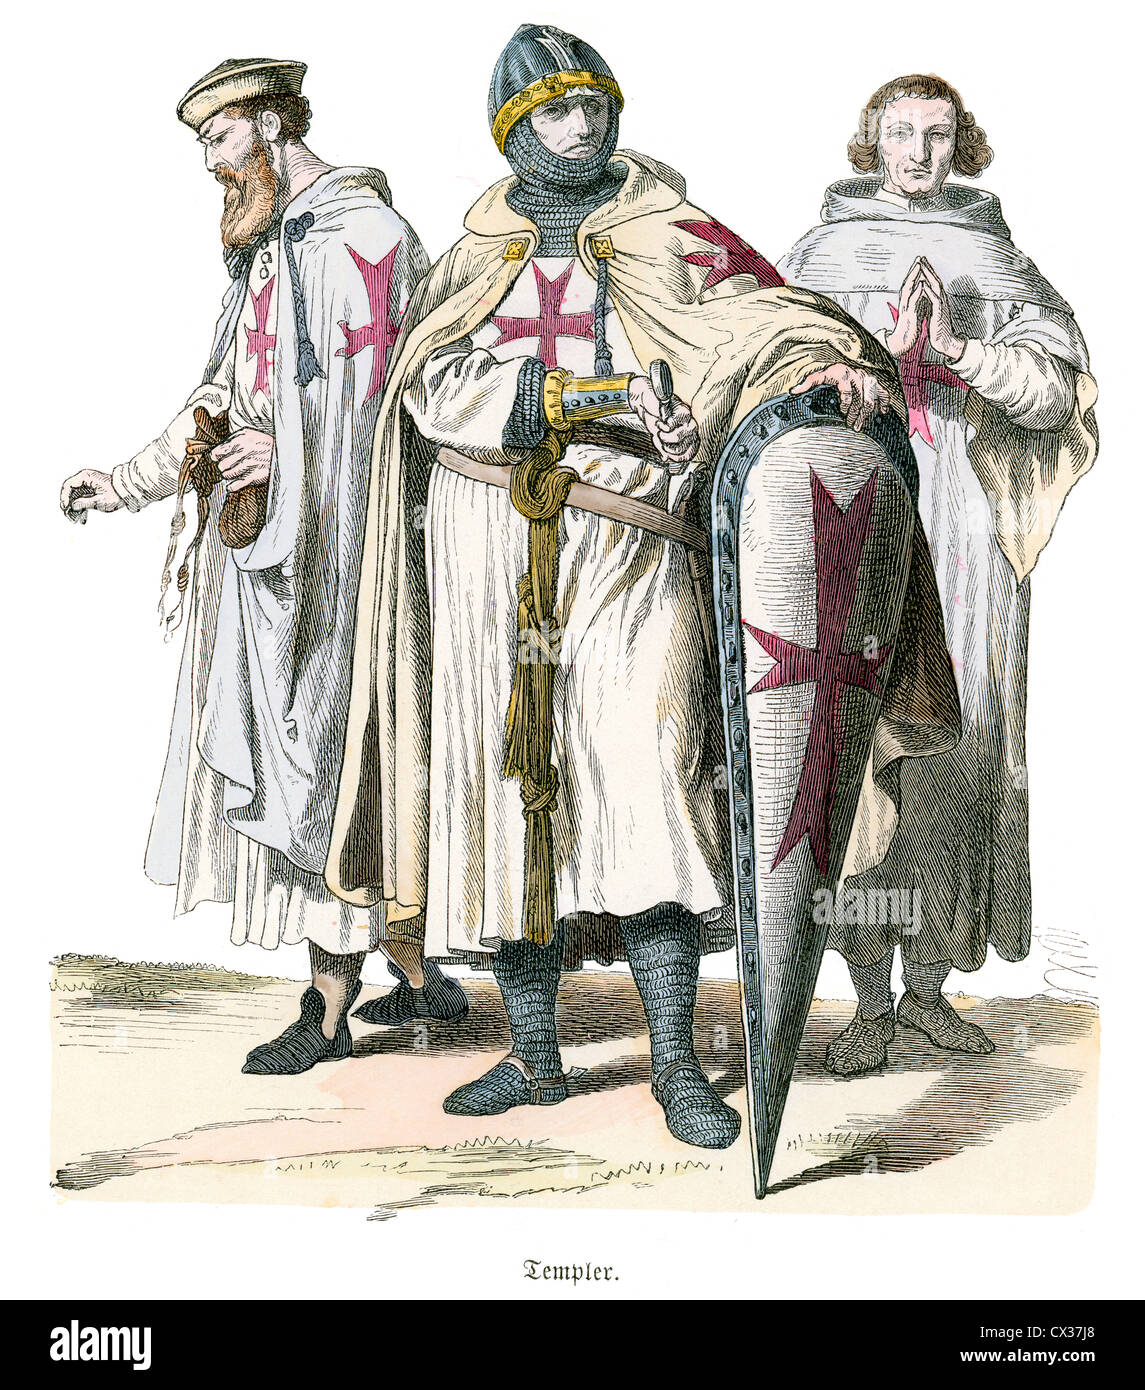 Knights Templar, 12th to 13th Century. The Poor Fellow-Soldiers of Christ and of the Temple of Solomon, - Stock Image